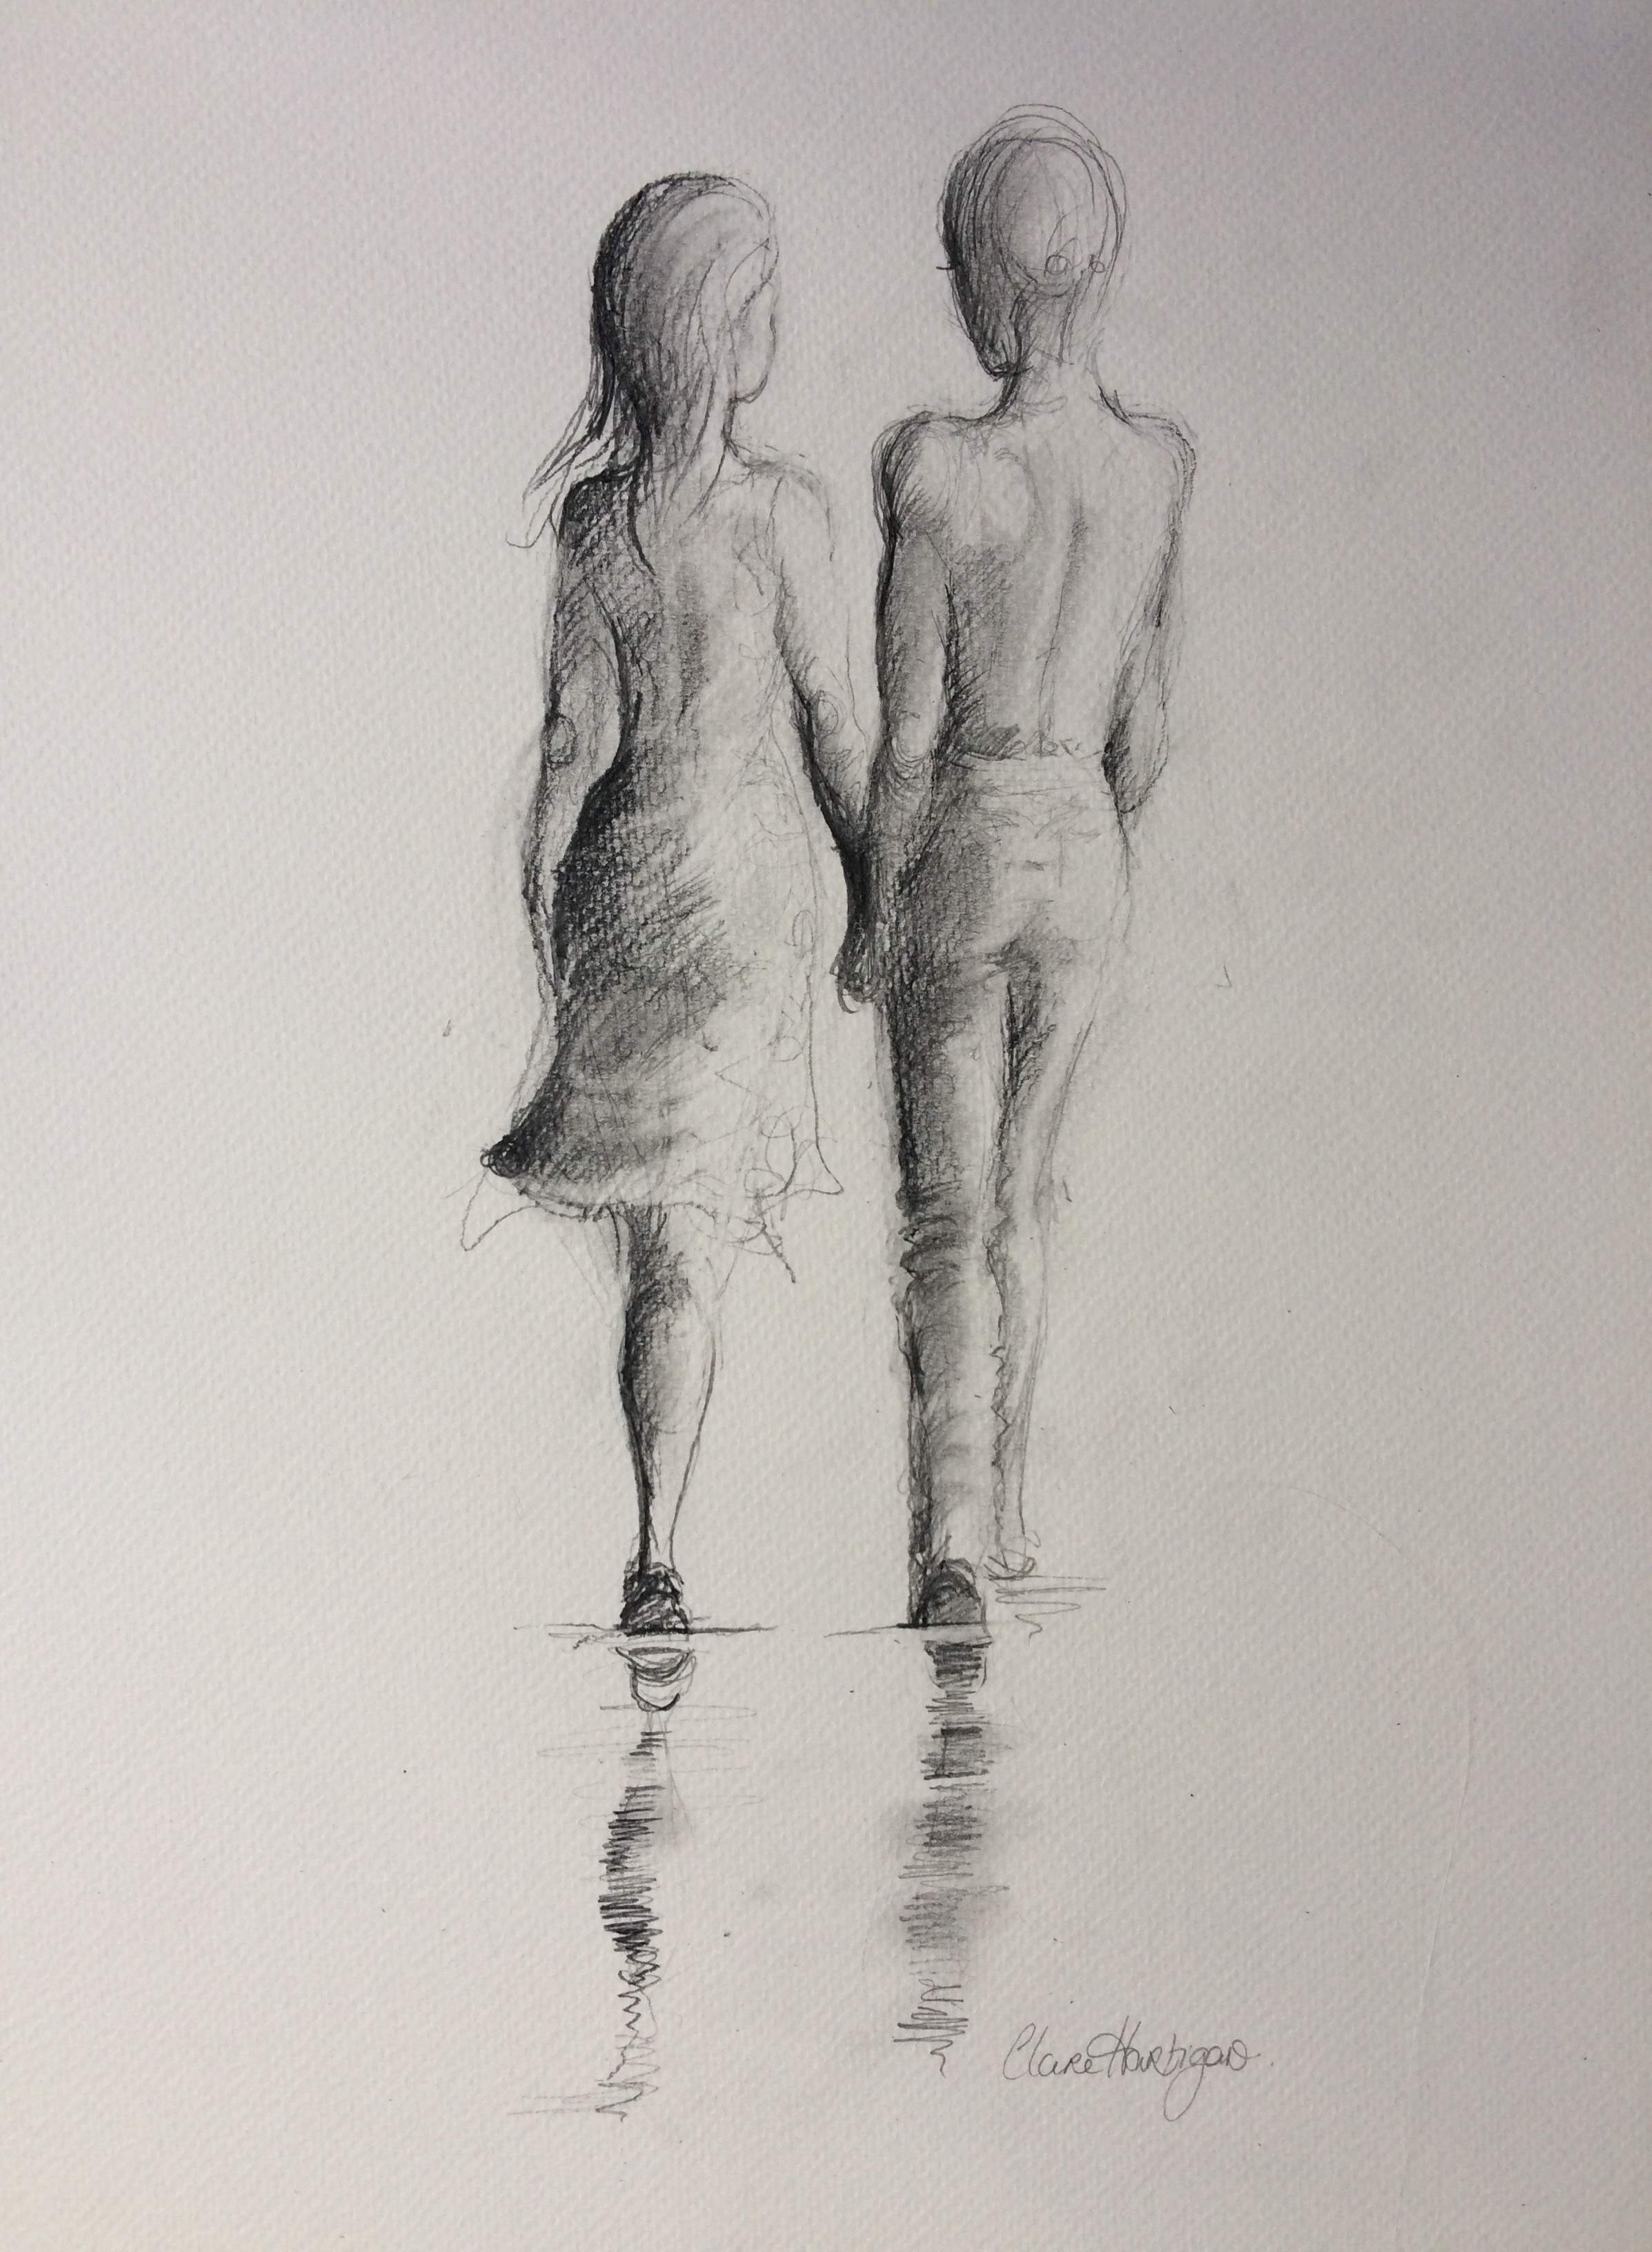 Walking Together (sold)